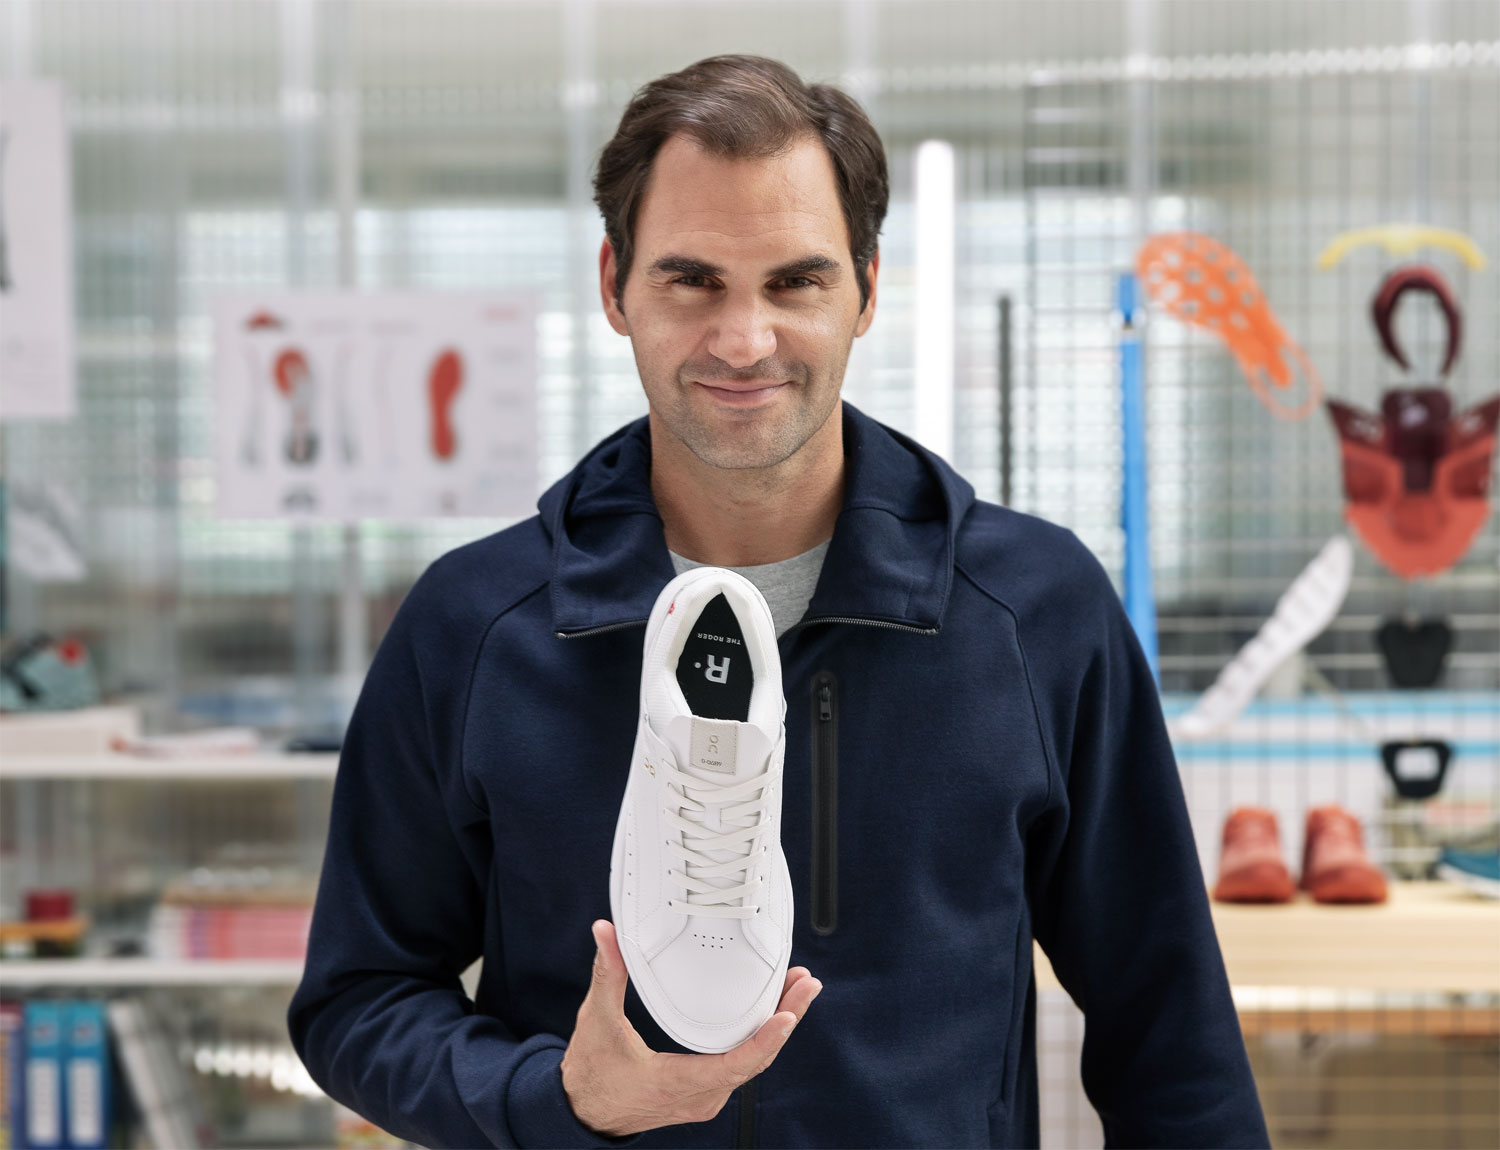 Roger Federer's New Sneaker Is the Most Advanced Tennis Shoe Ever